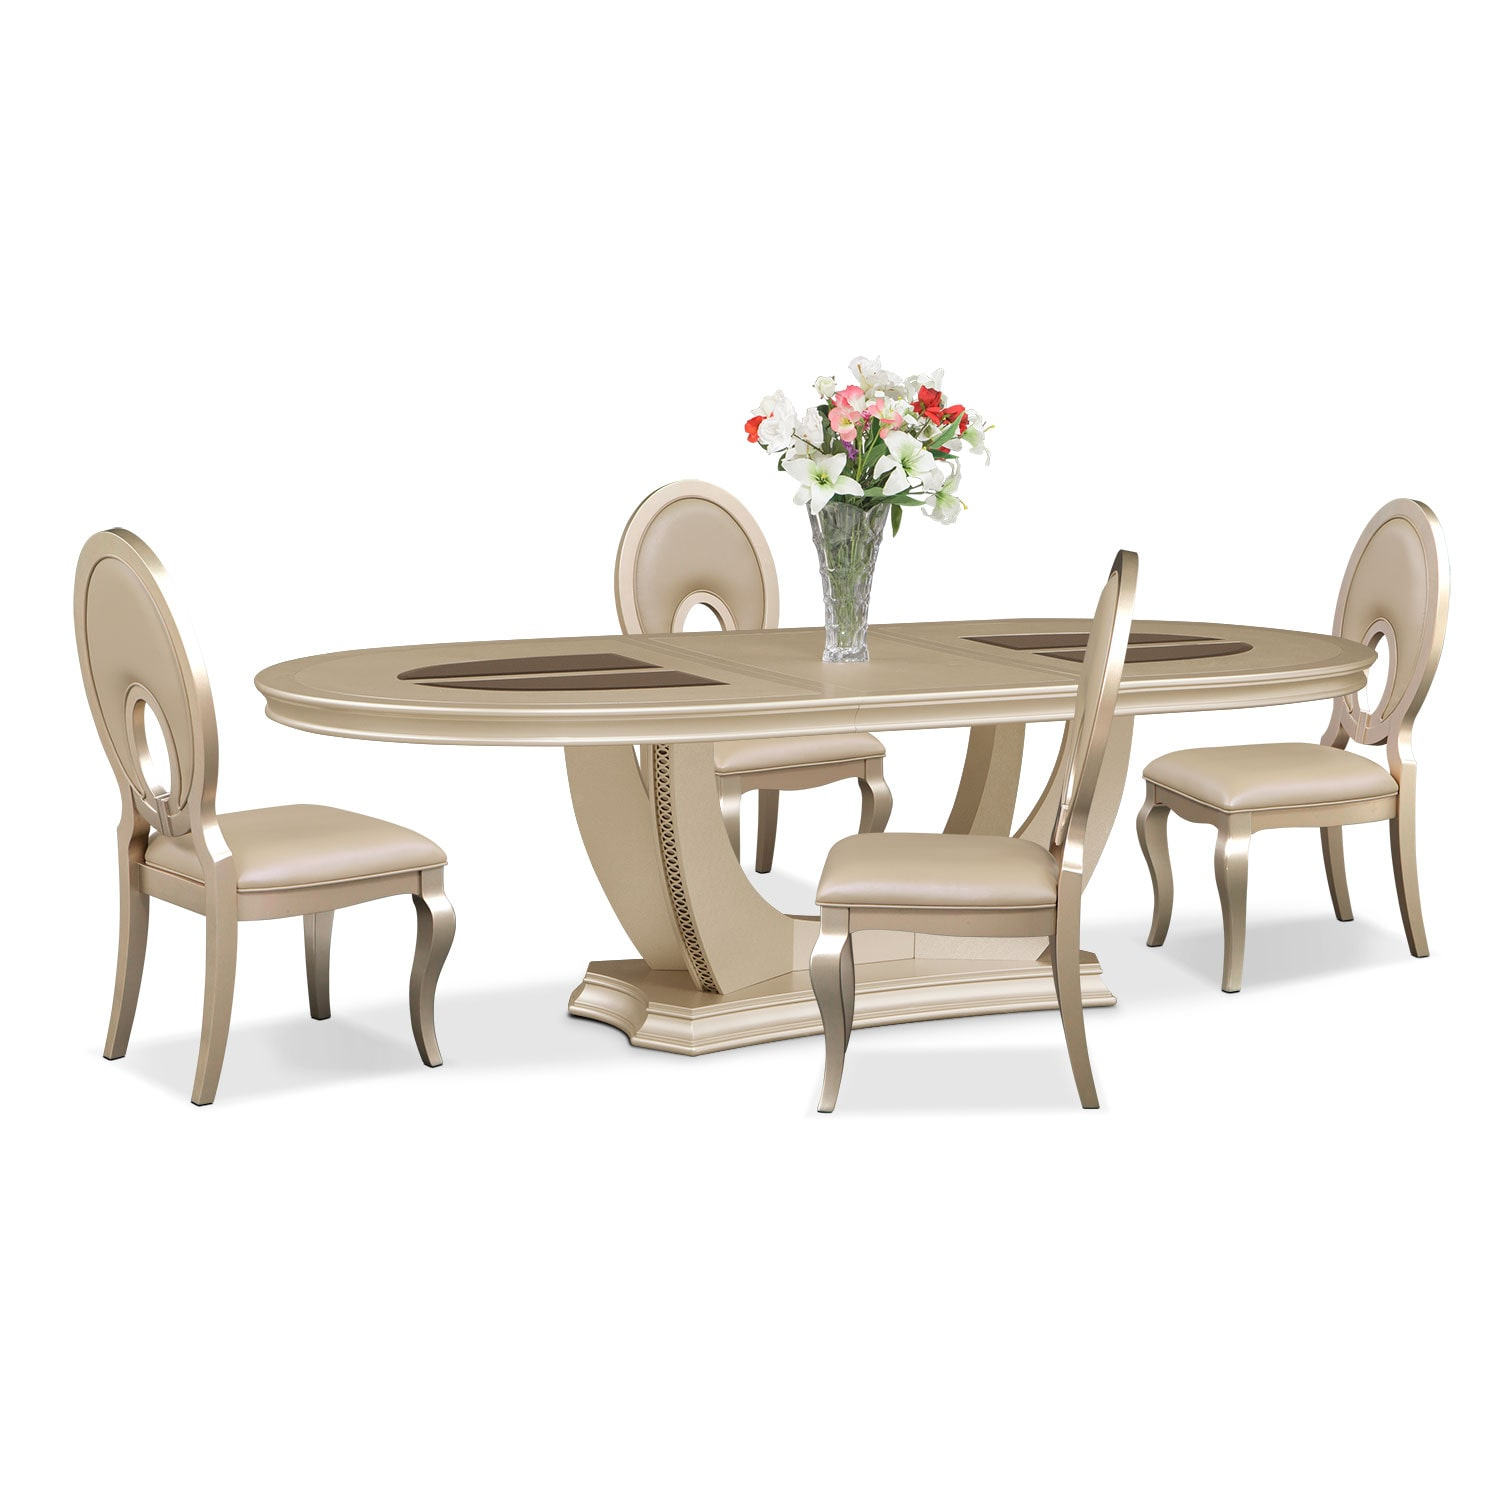 Allegro Oval Table and 4 Chairs - Platinum